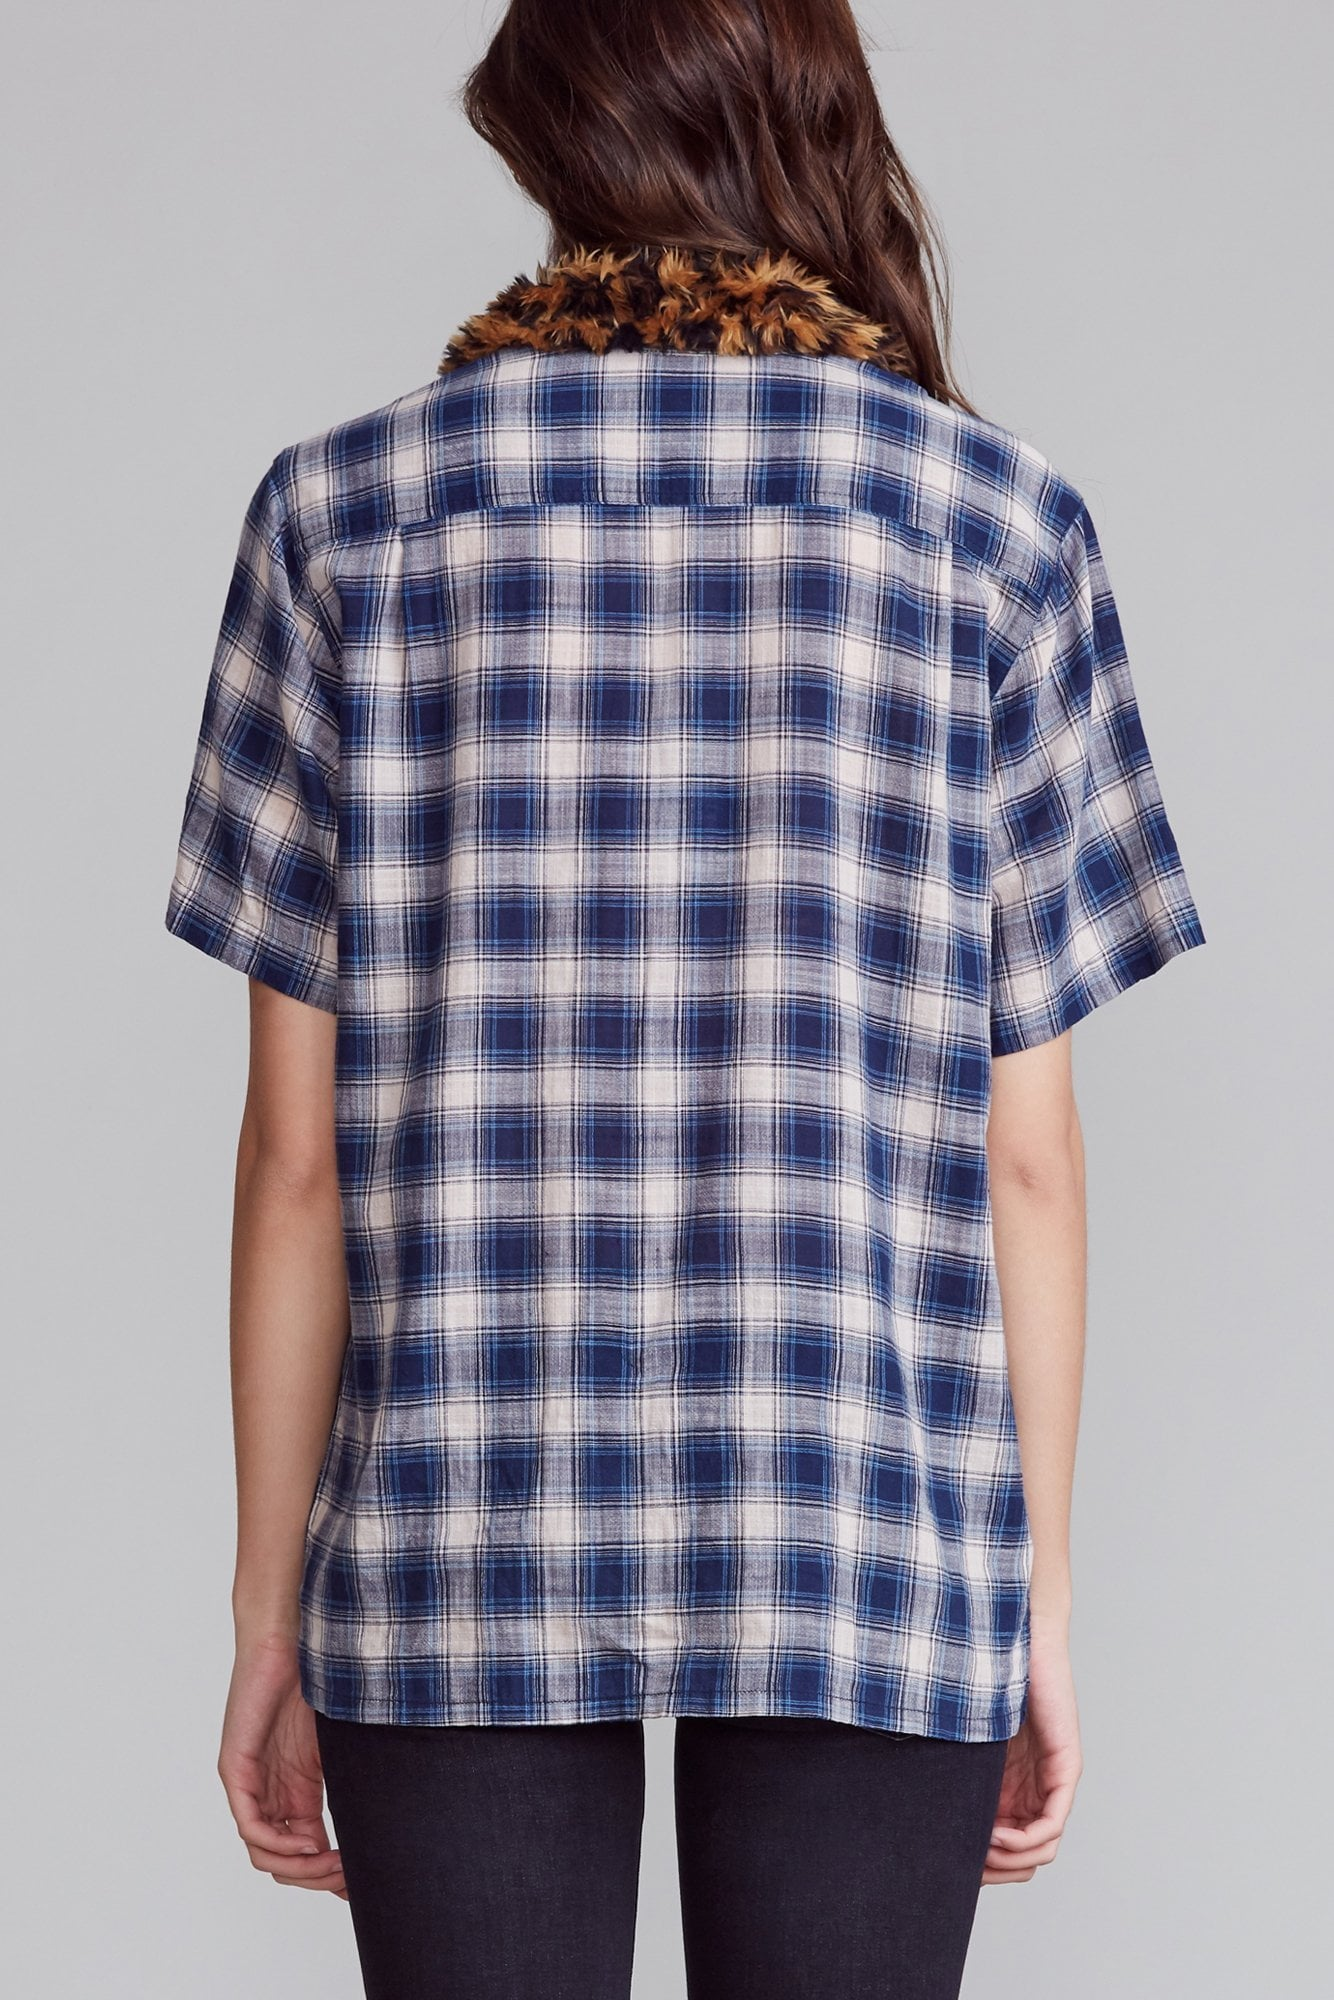 Tony Shirt - Blue Plaid with Fire and Leopard